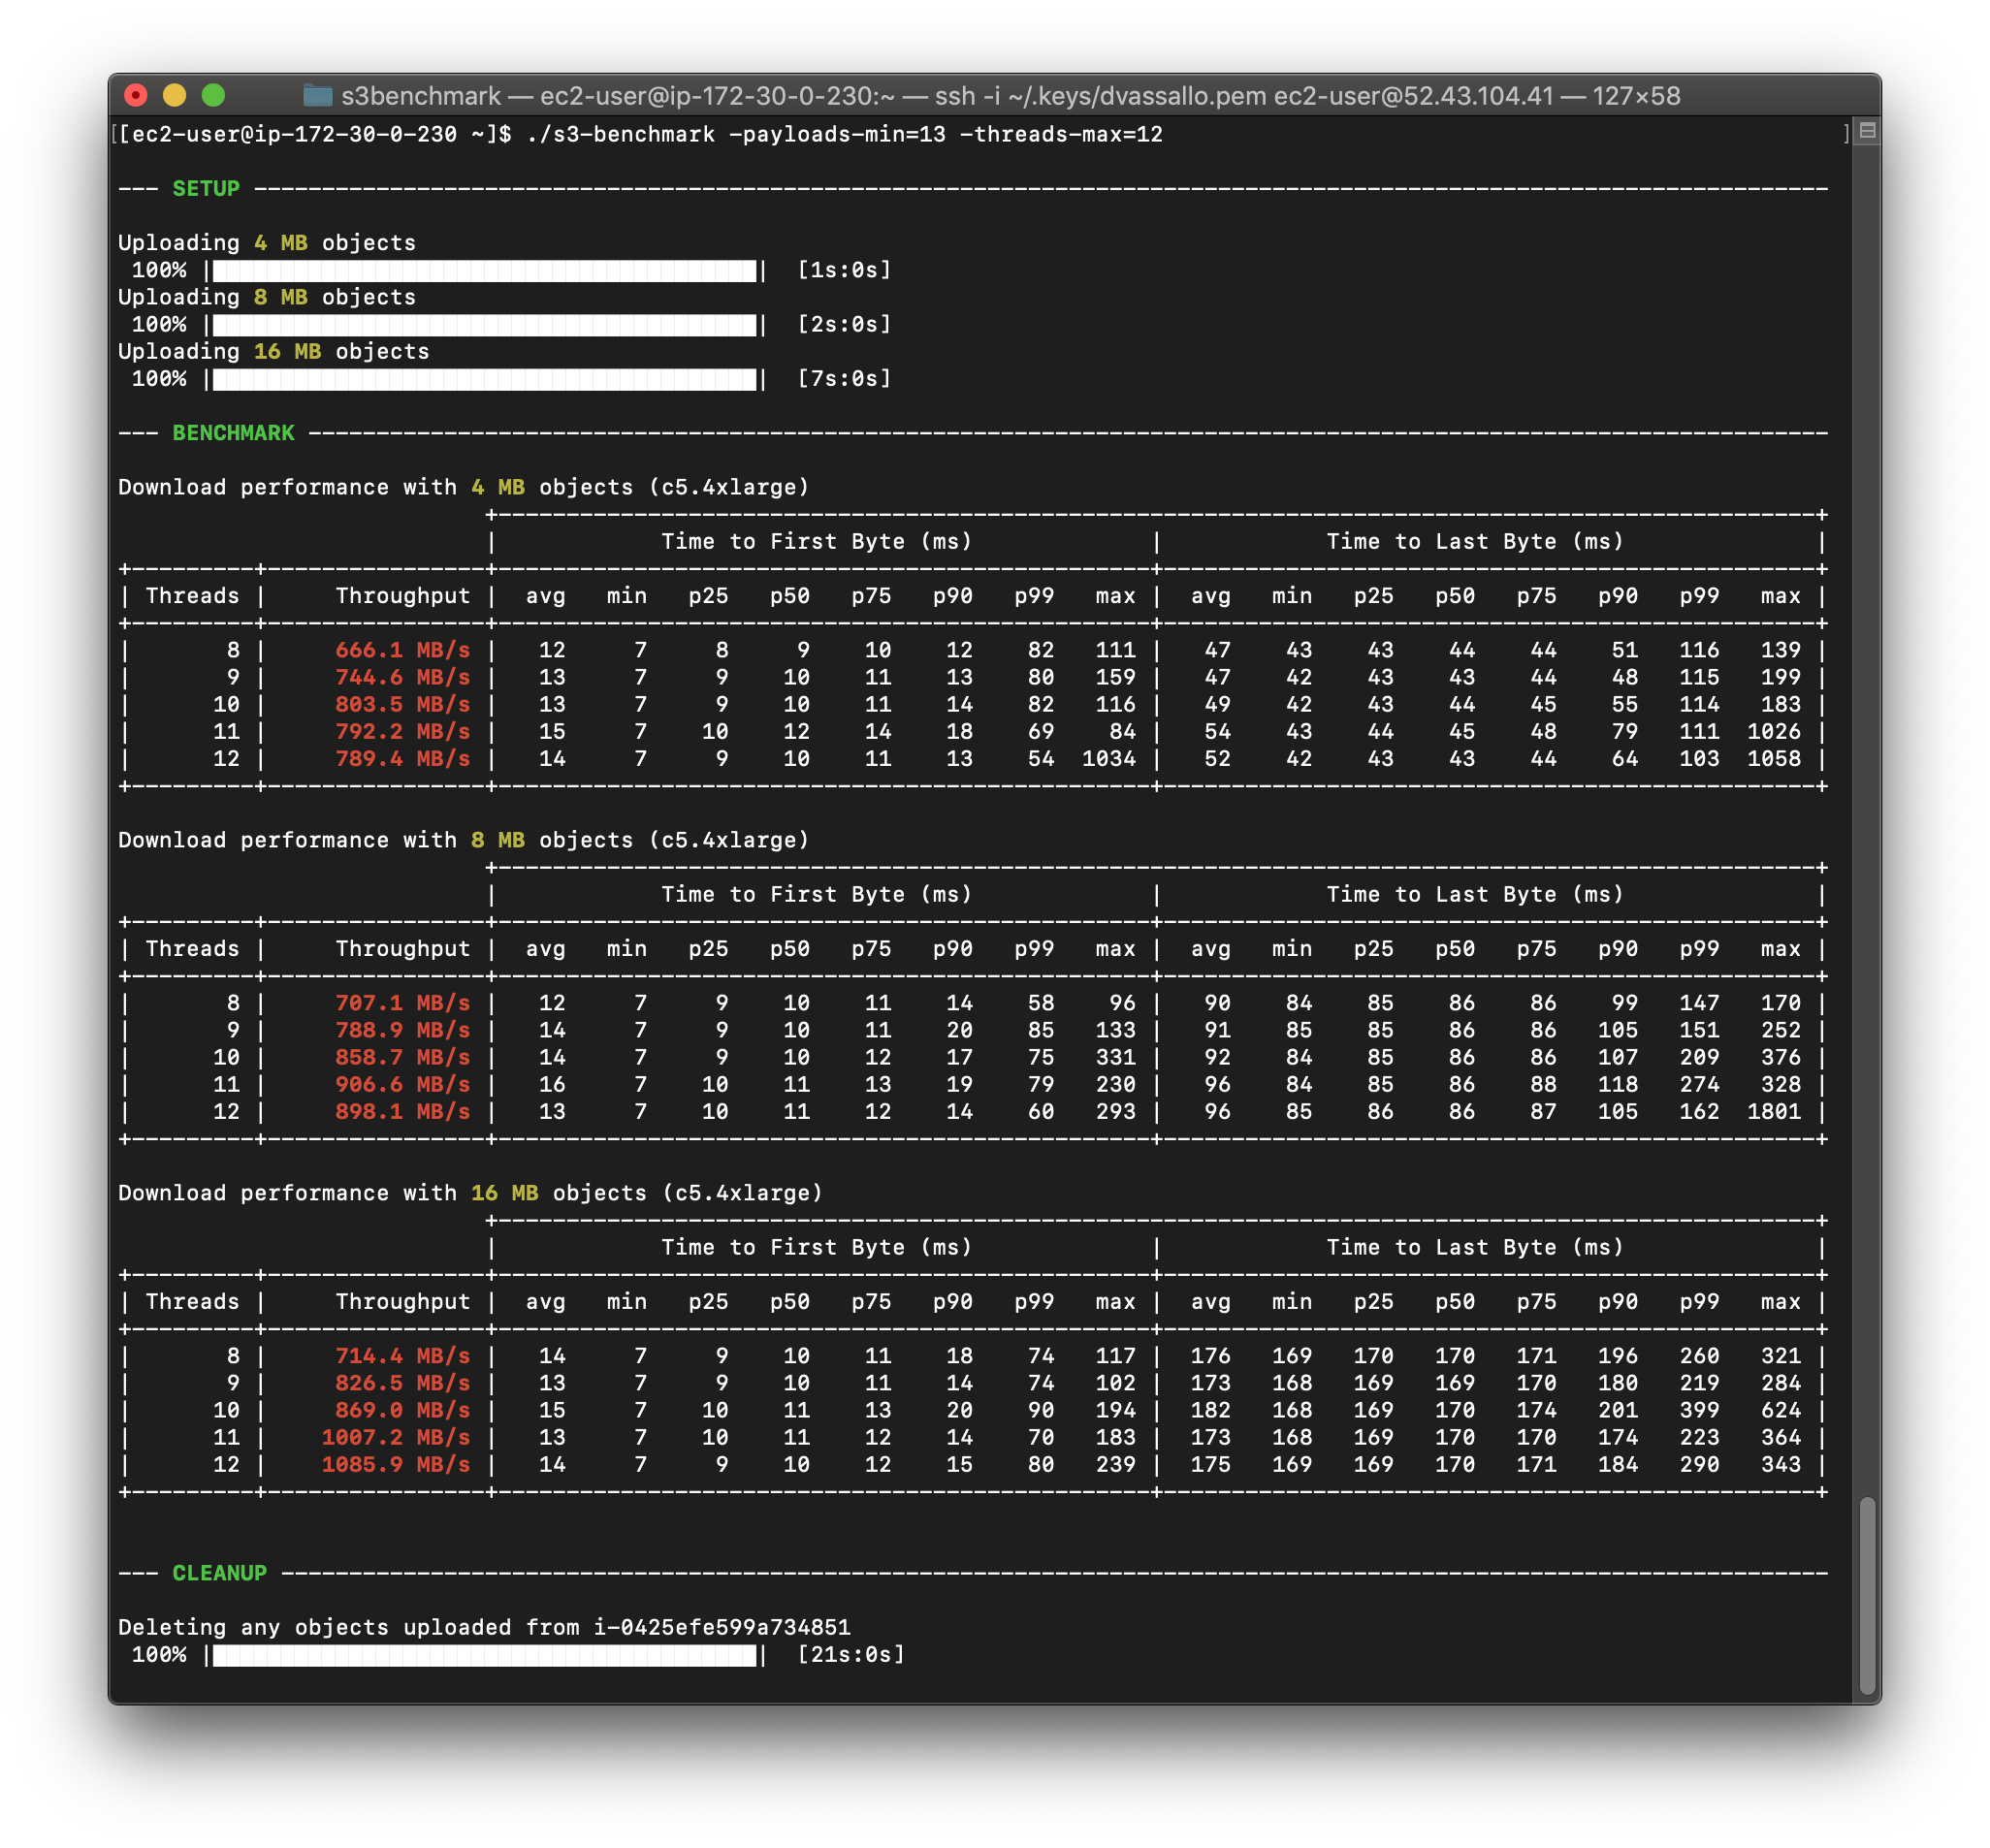 Benchmark results from a c5.4xlarge EC2 instance